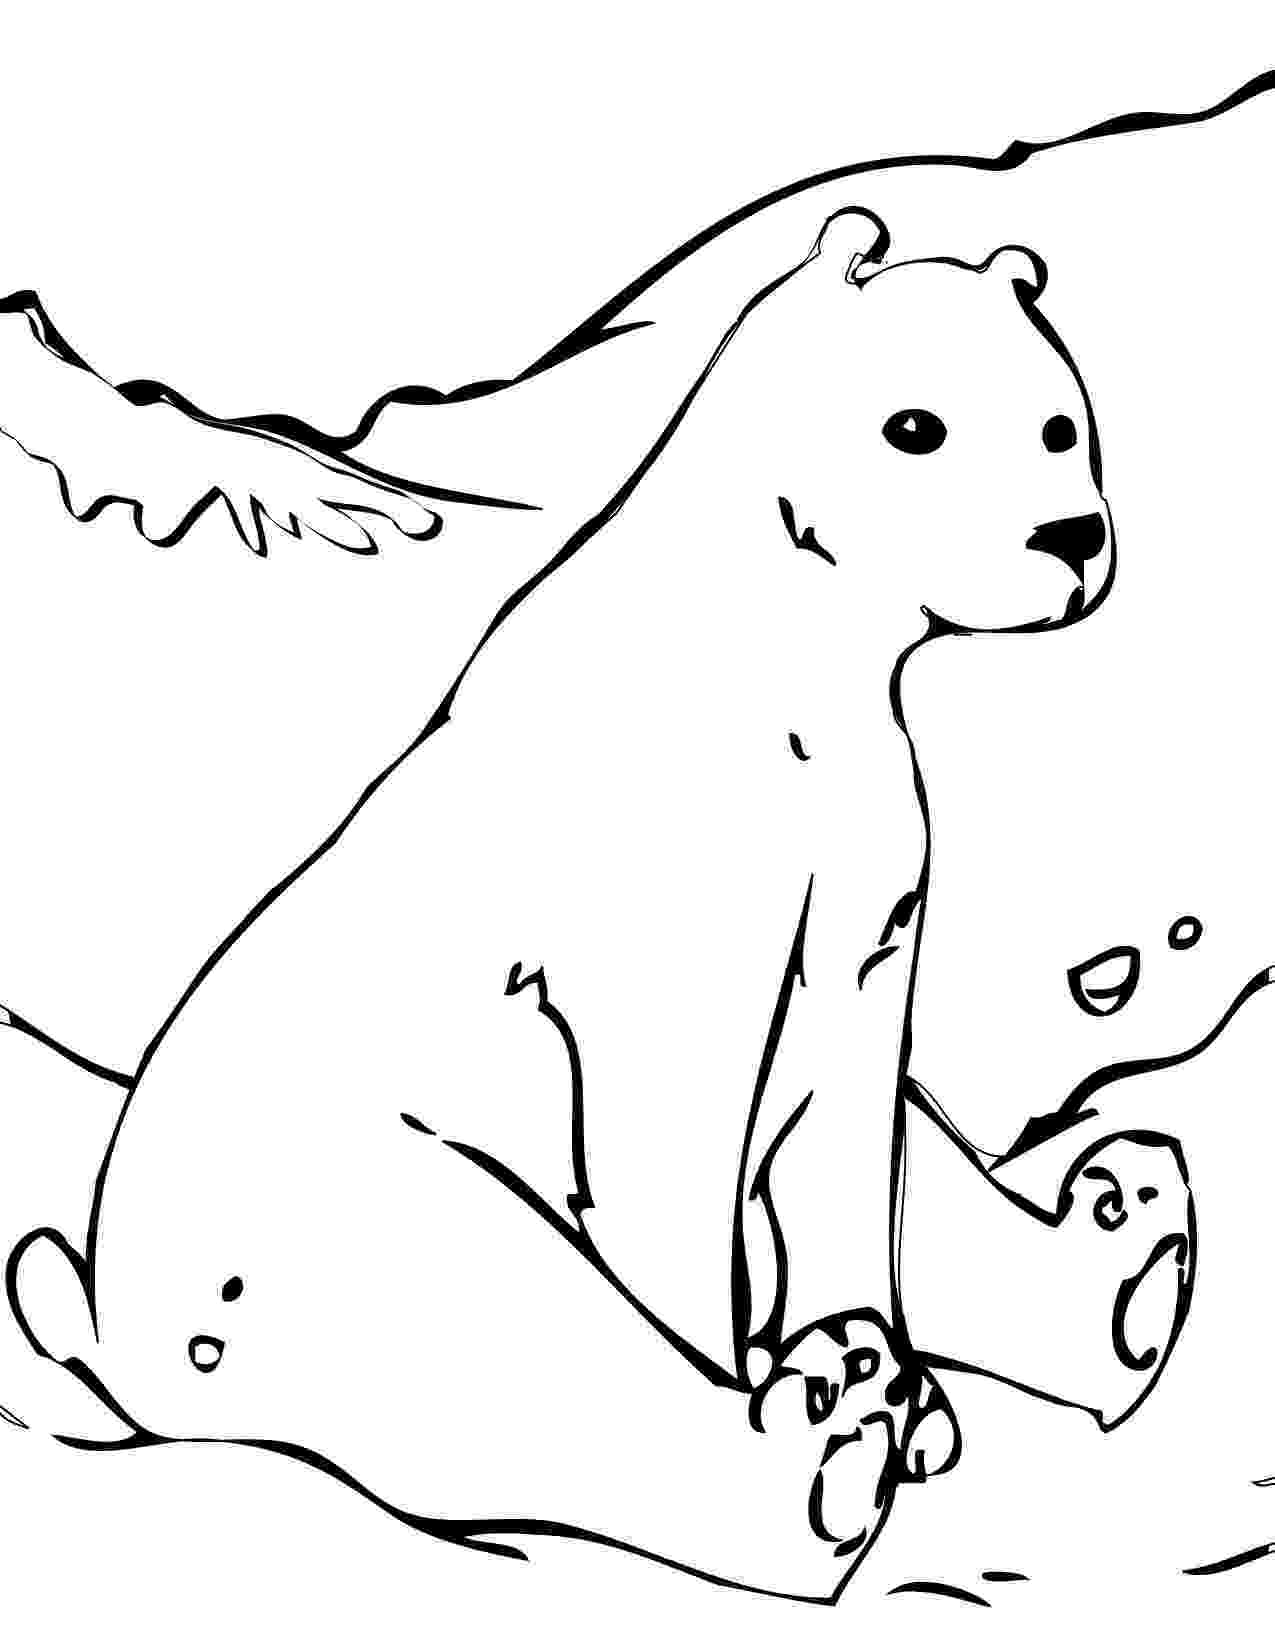 coloring page bear free printable polar bear coloring pages for kids page coloring bear